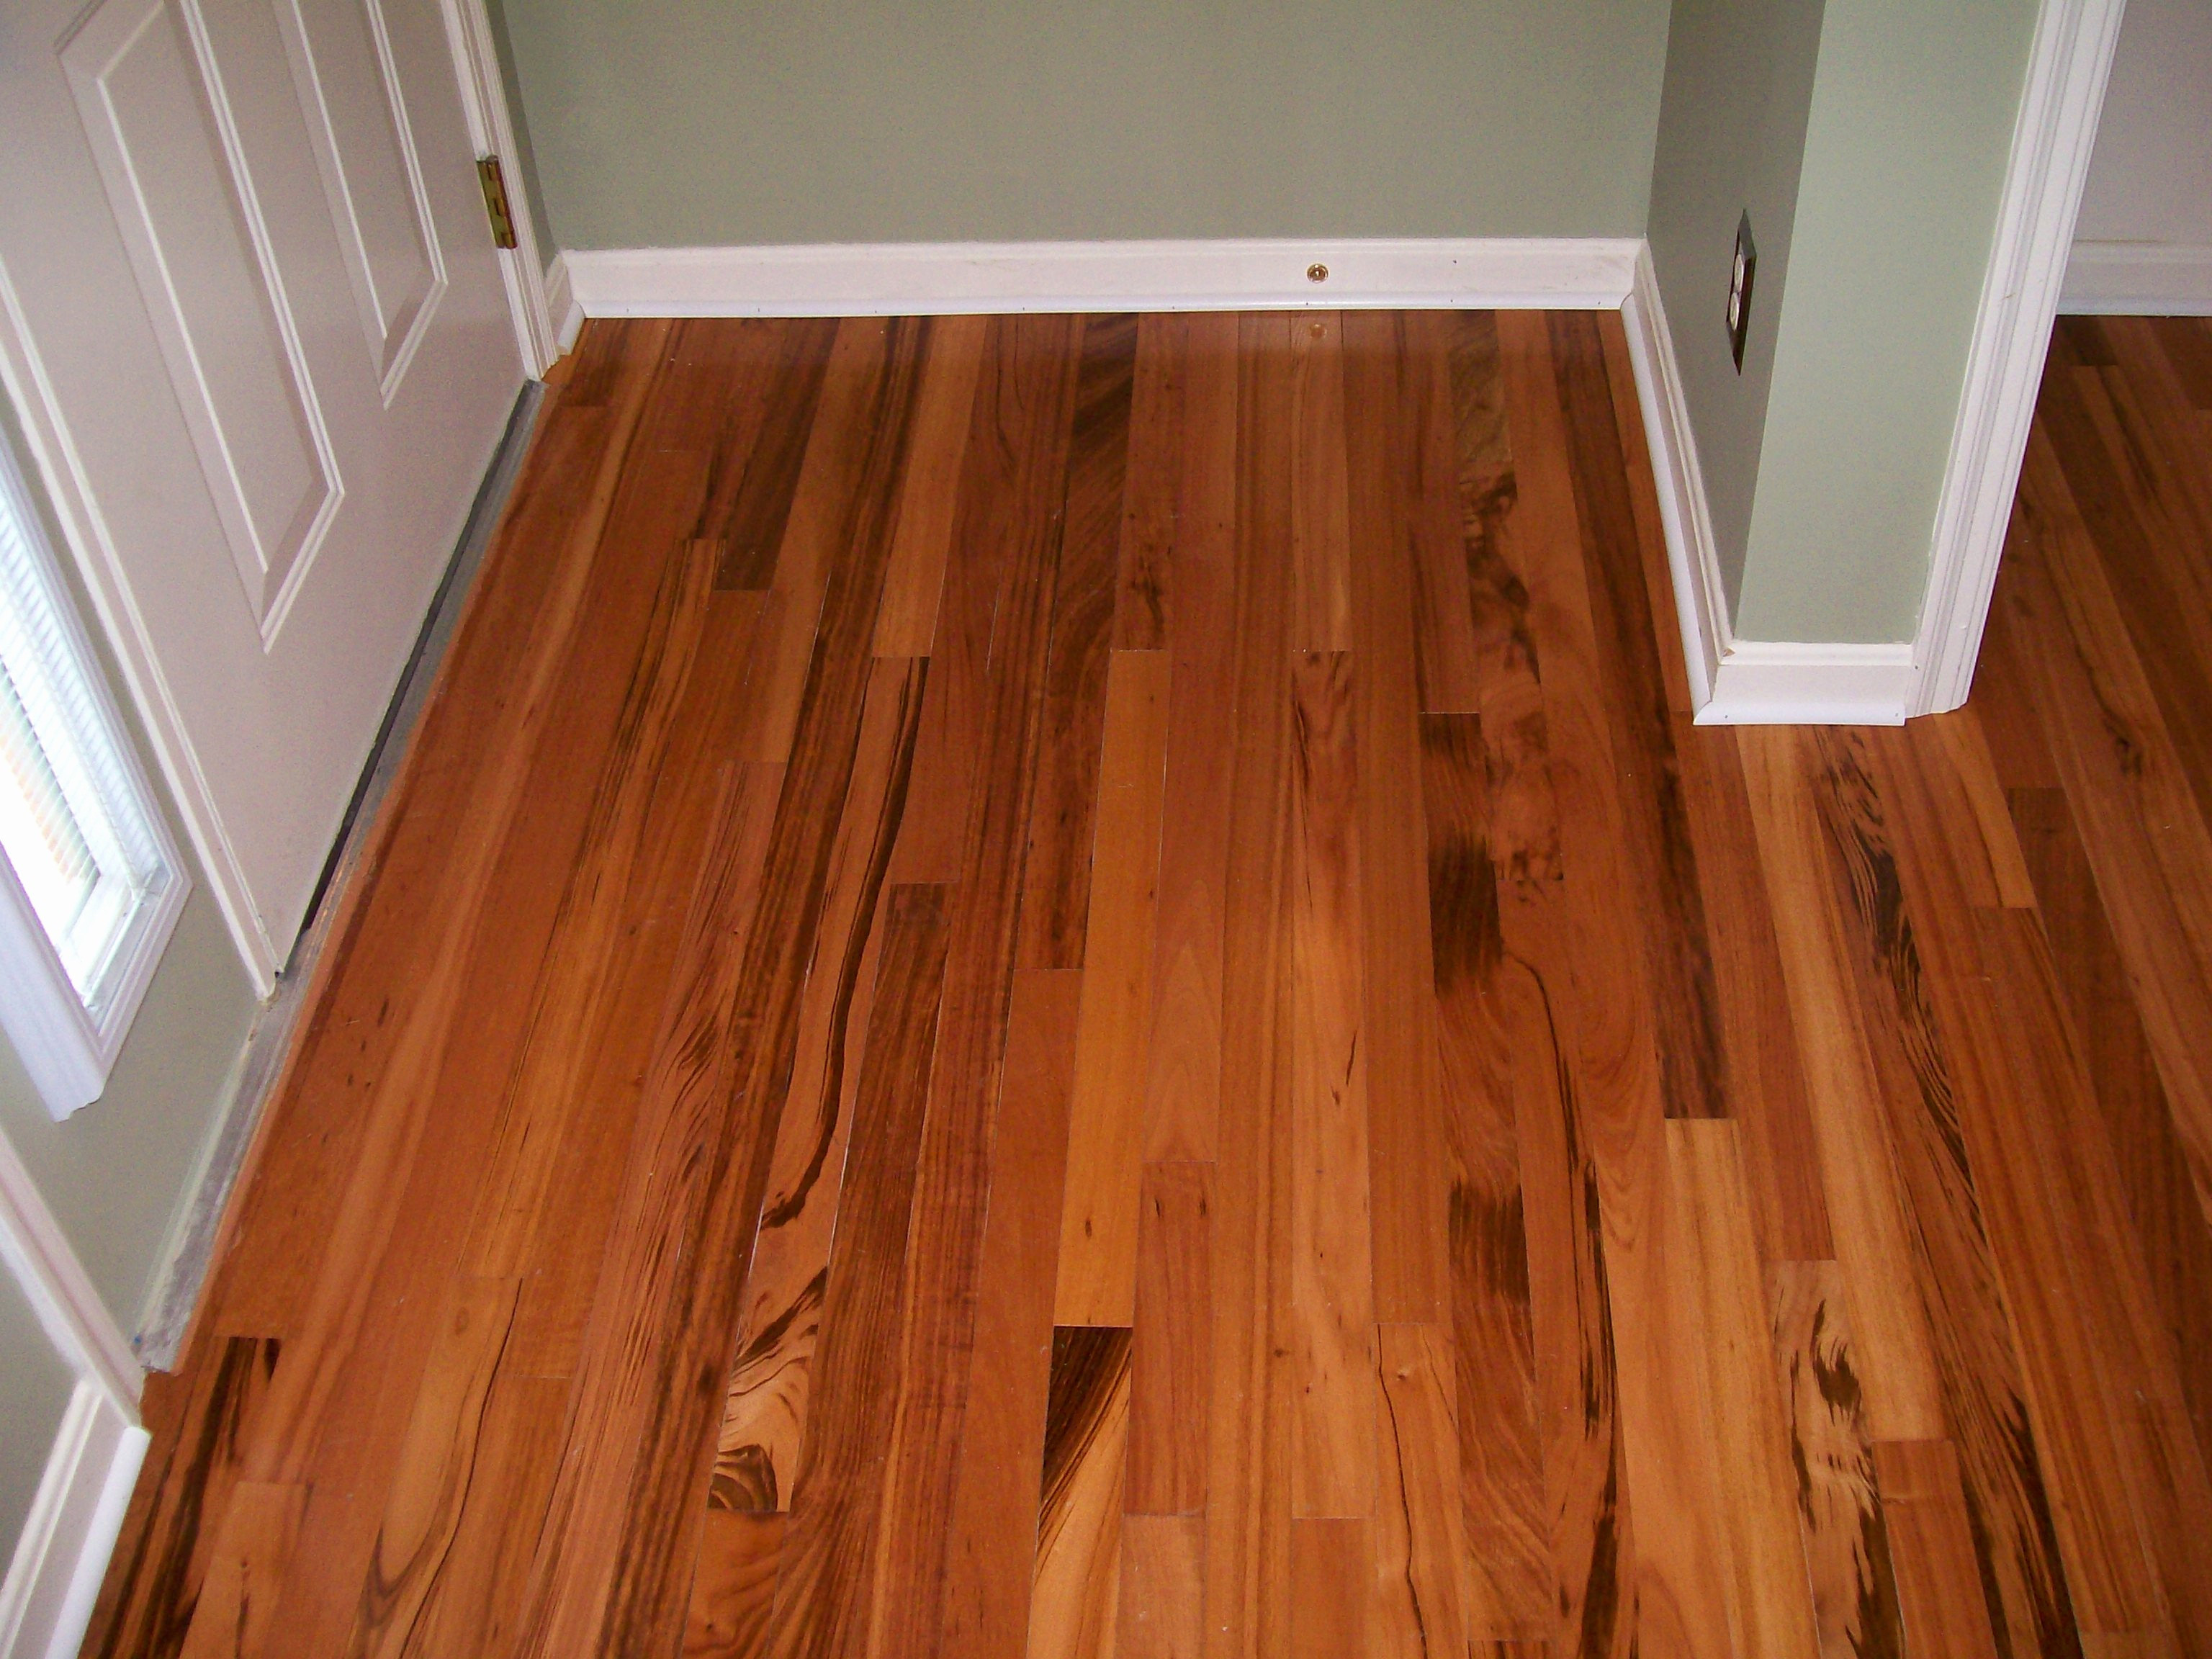 cost of hardwood floor refinishing per square foot of 17 new cost of hardwood floor installation pics dizpos com within cost of hardwood floor installation new 50 fresh estimated cost installing hardwood floors 50 photos of